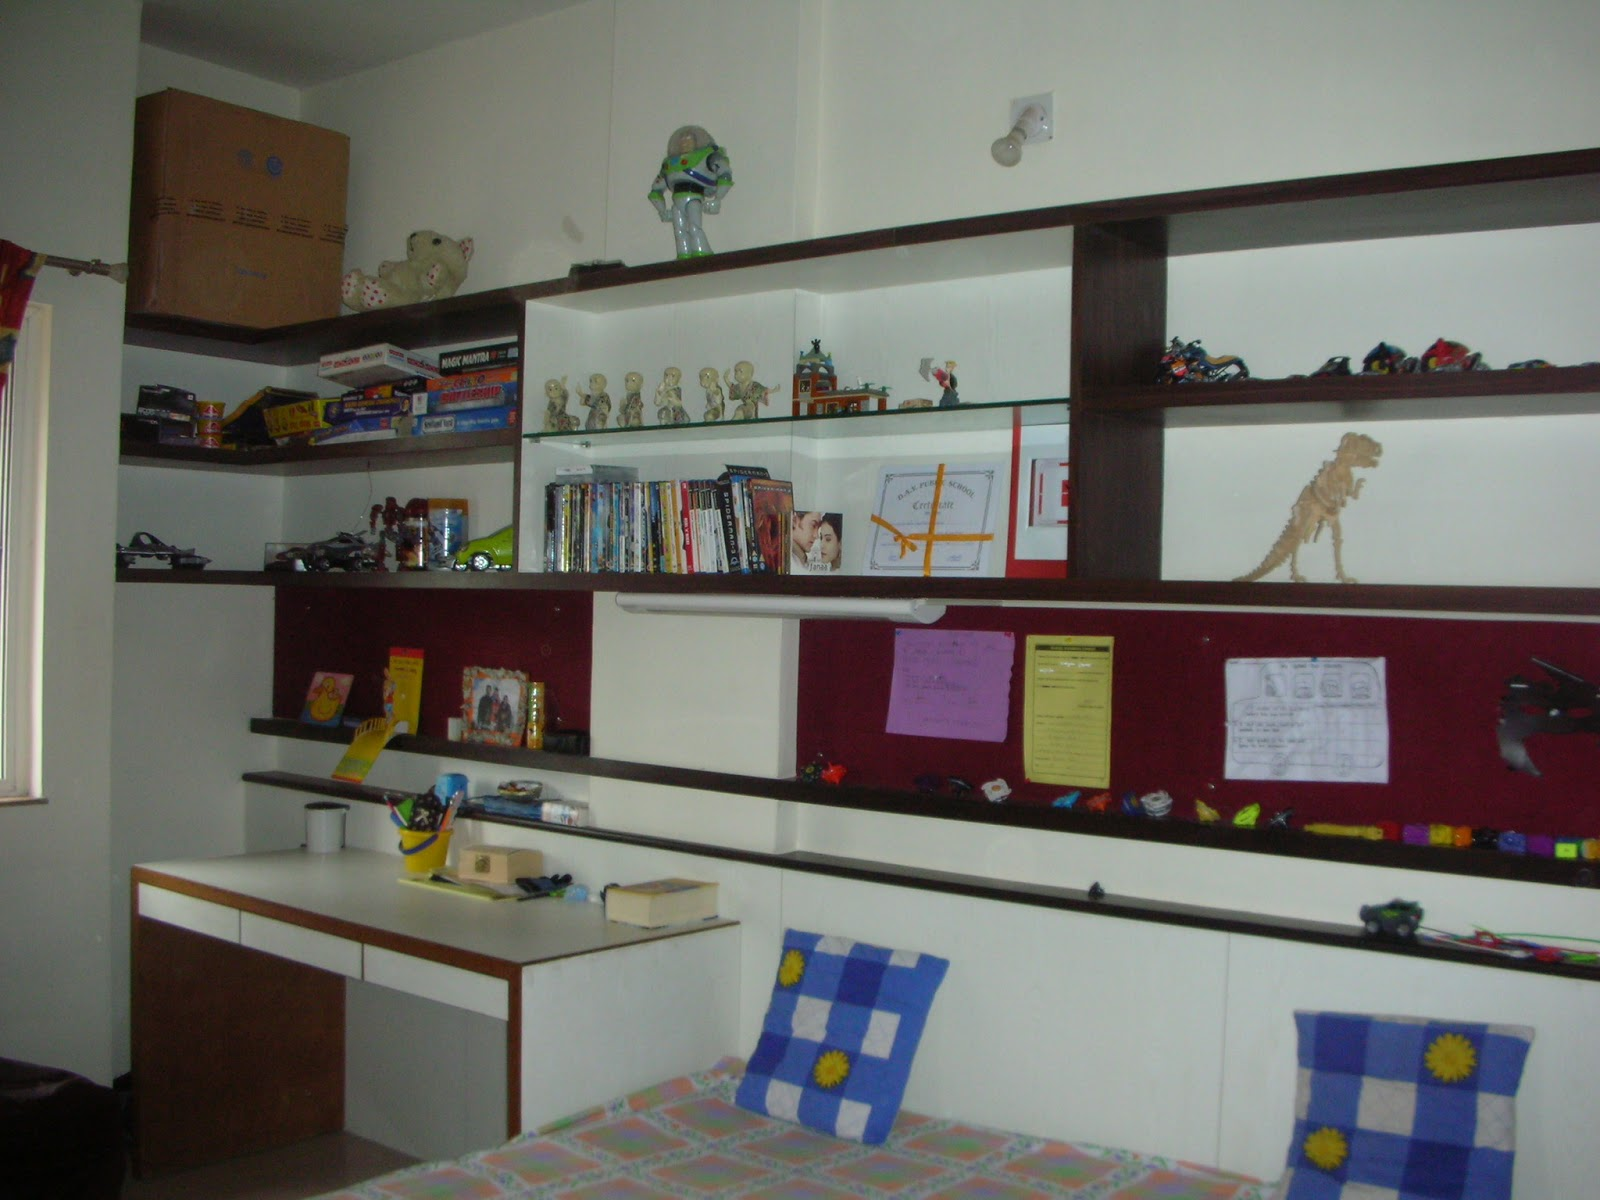 View of the study table and bed of children bedroom